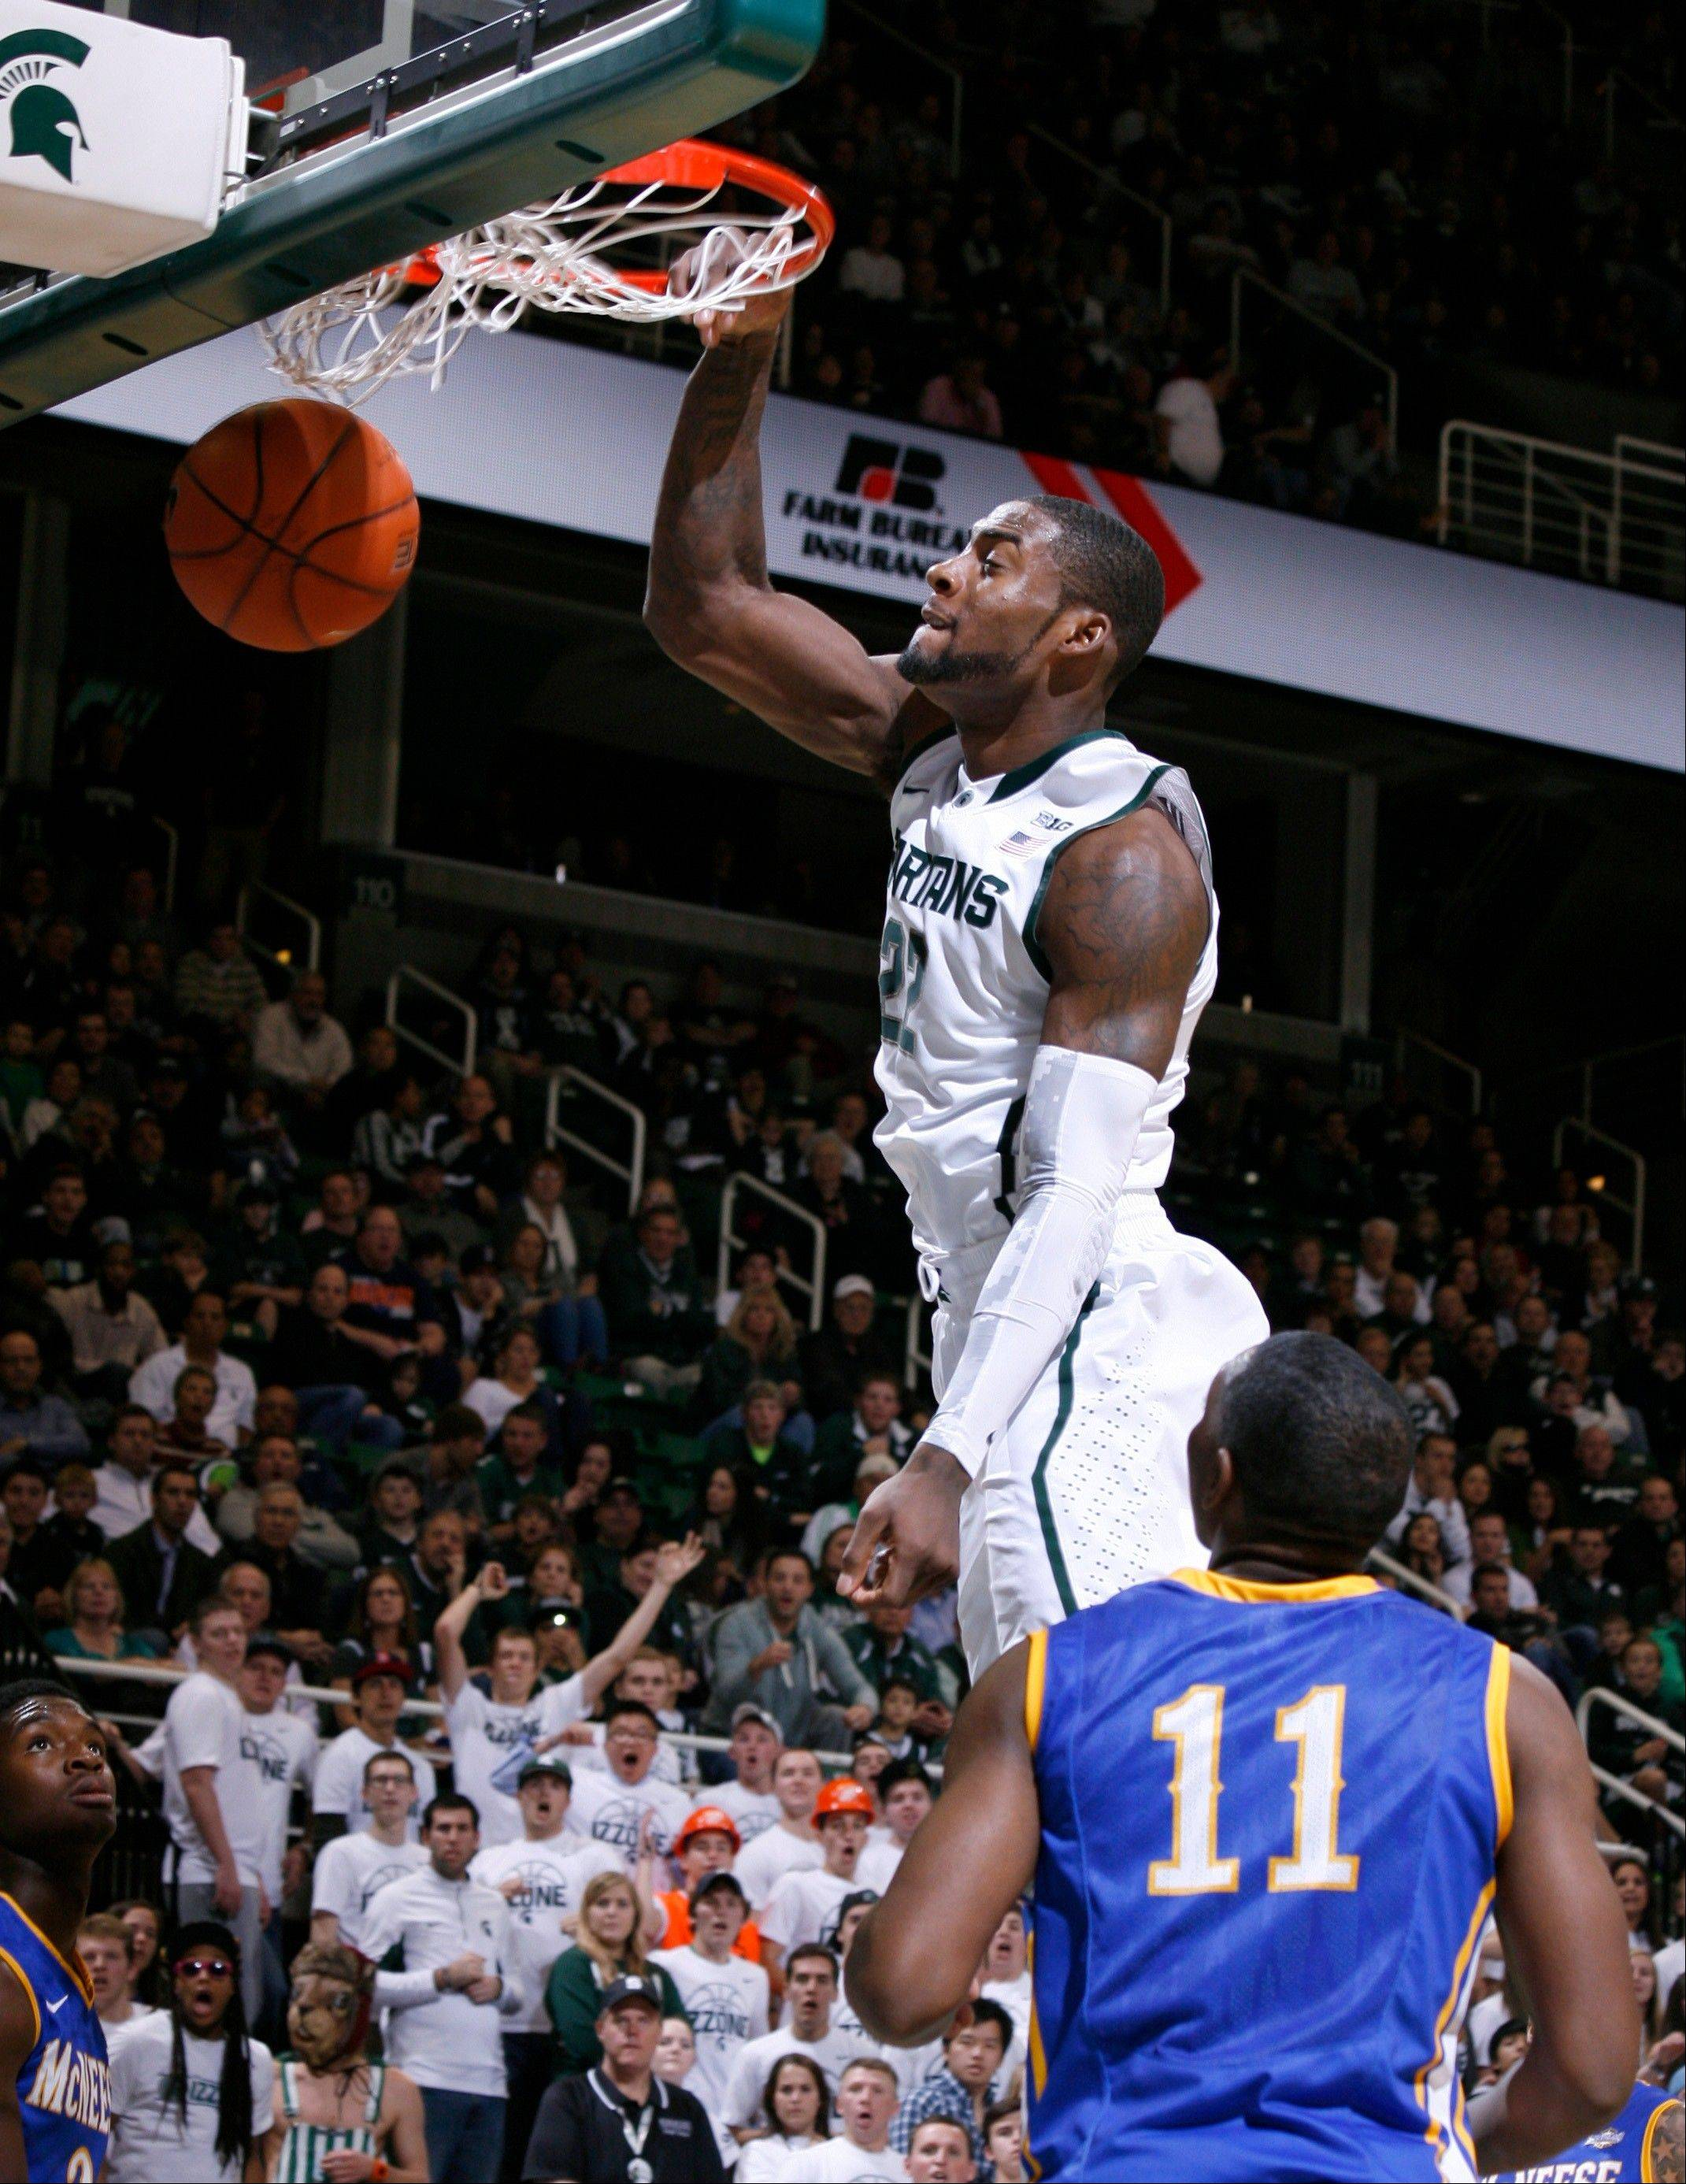 Michigan State�s Branden Dawson dunks over McNeese State�s Kevin Hardy Friday during the second half in East Lansing, Mich.